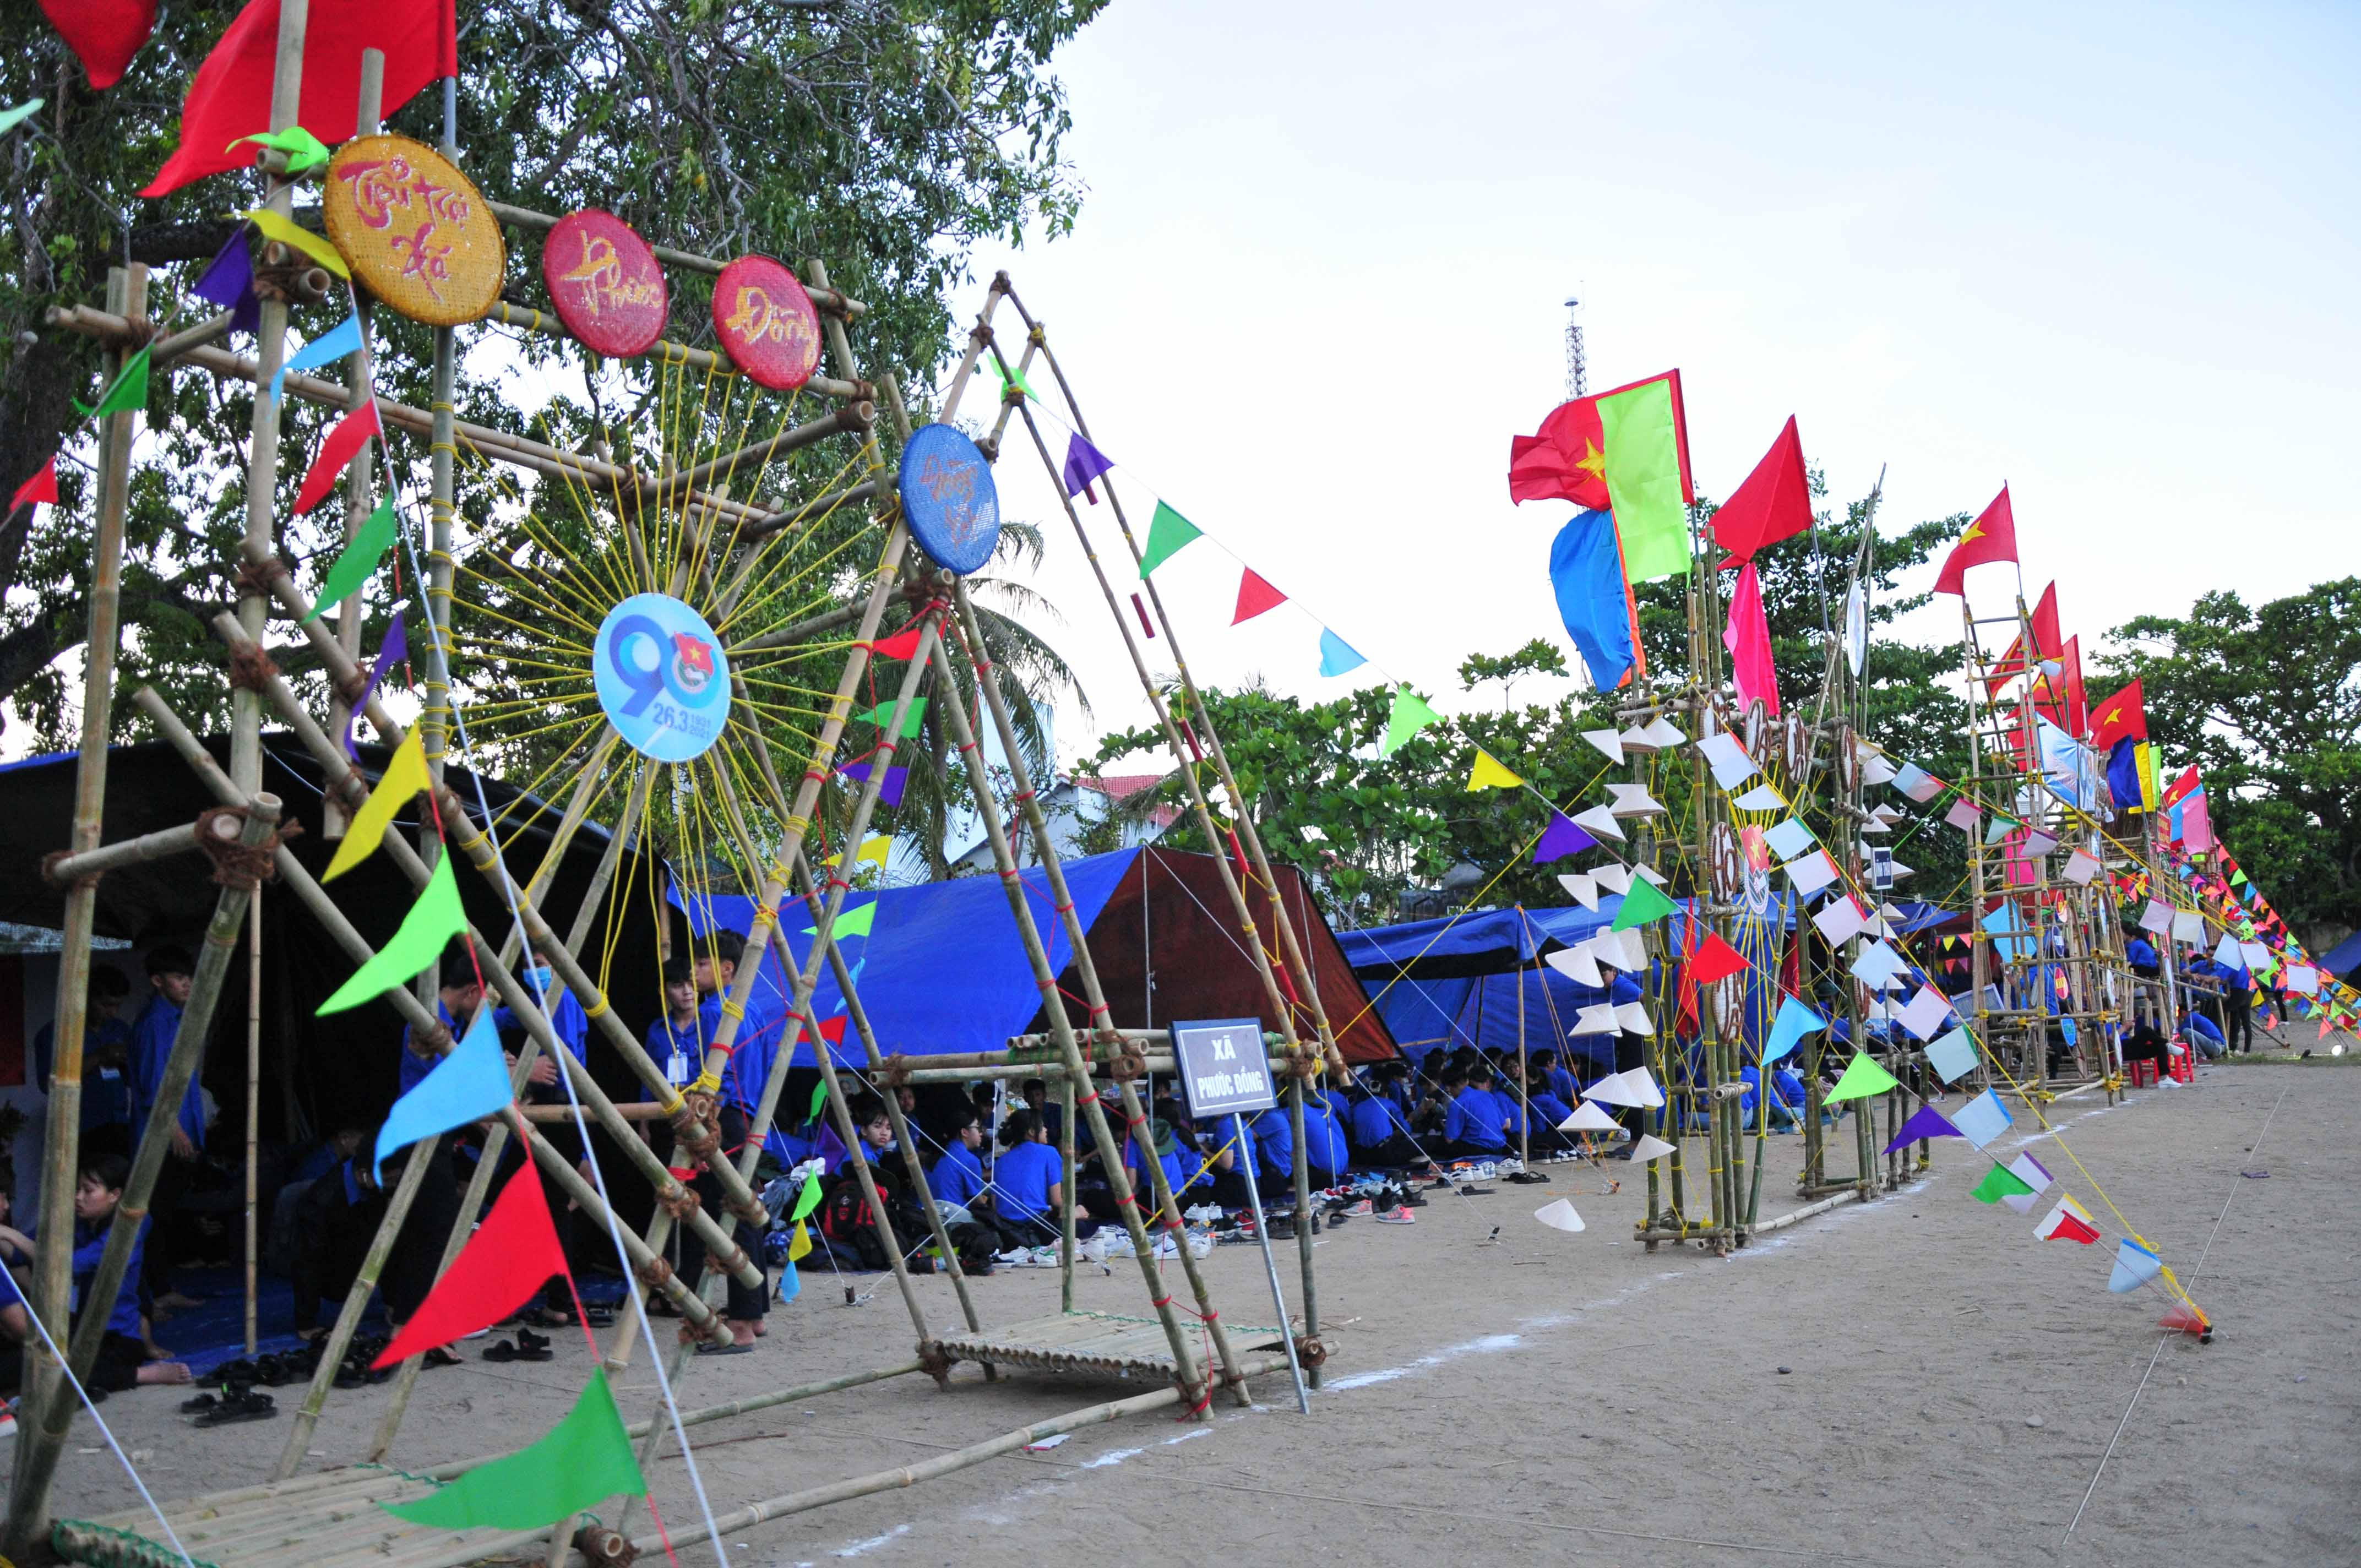 Tents with colorfully-decorated gates